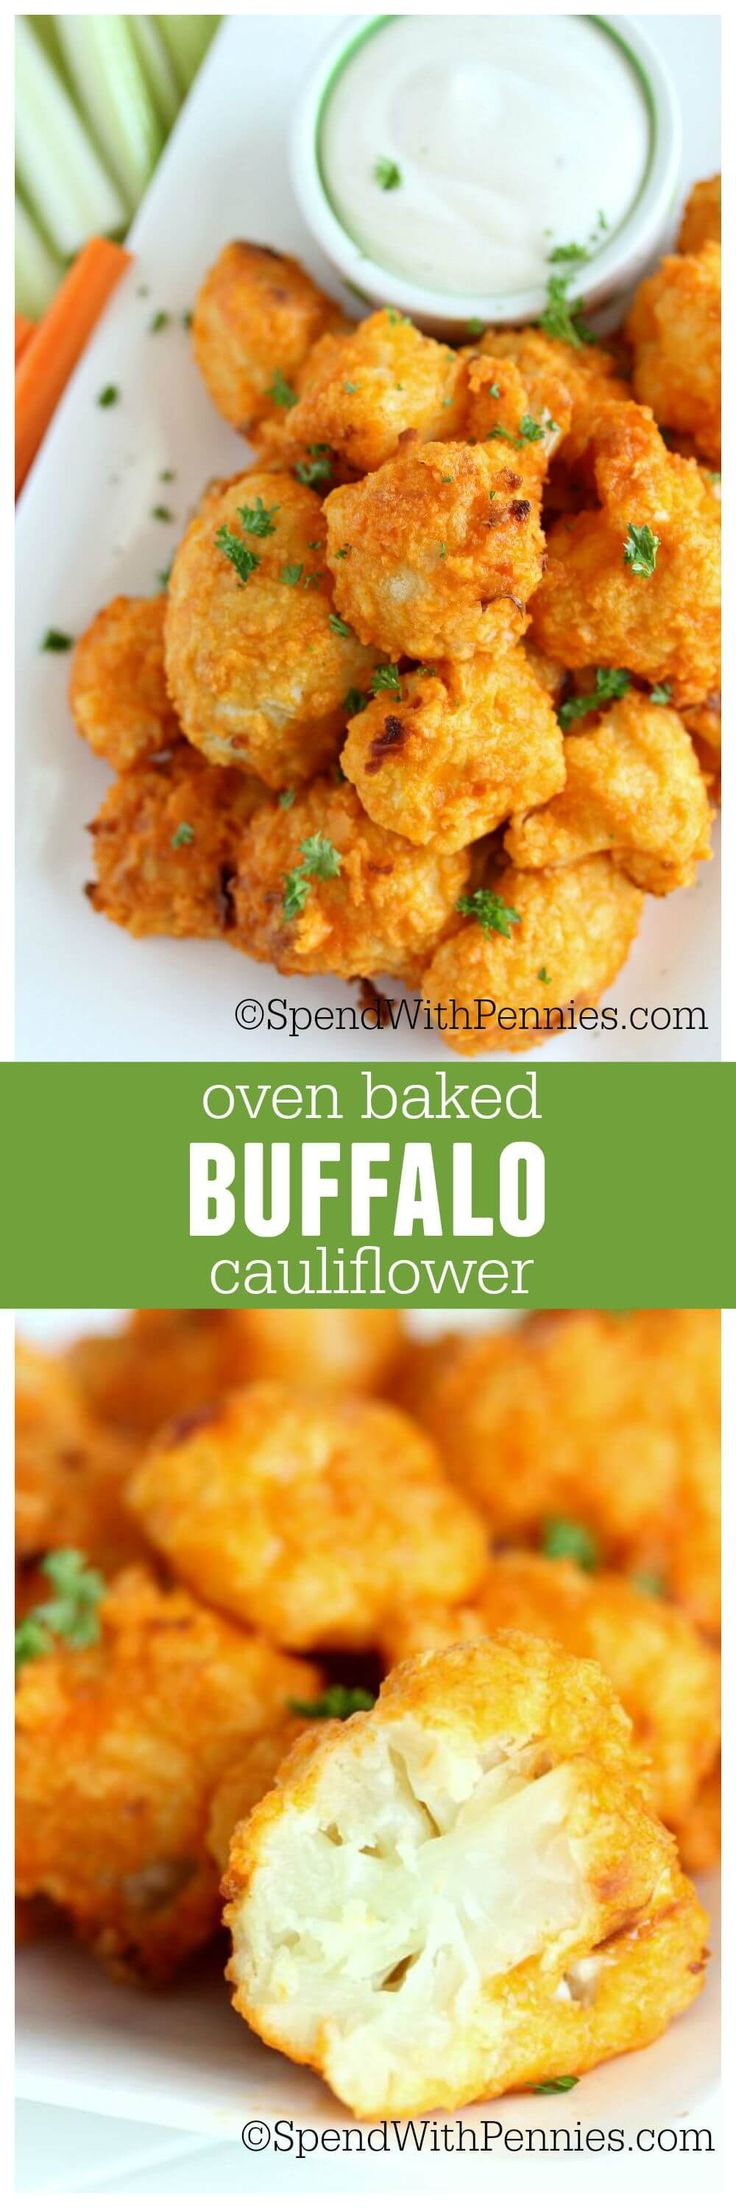 Oven Baked Buffalo Cauliflower - Tender morsels of cauliflower baked in a crispy…